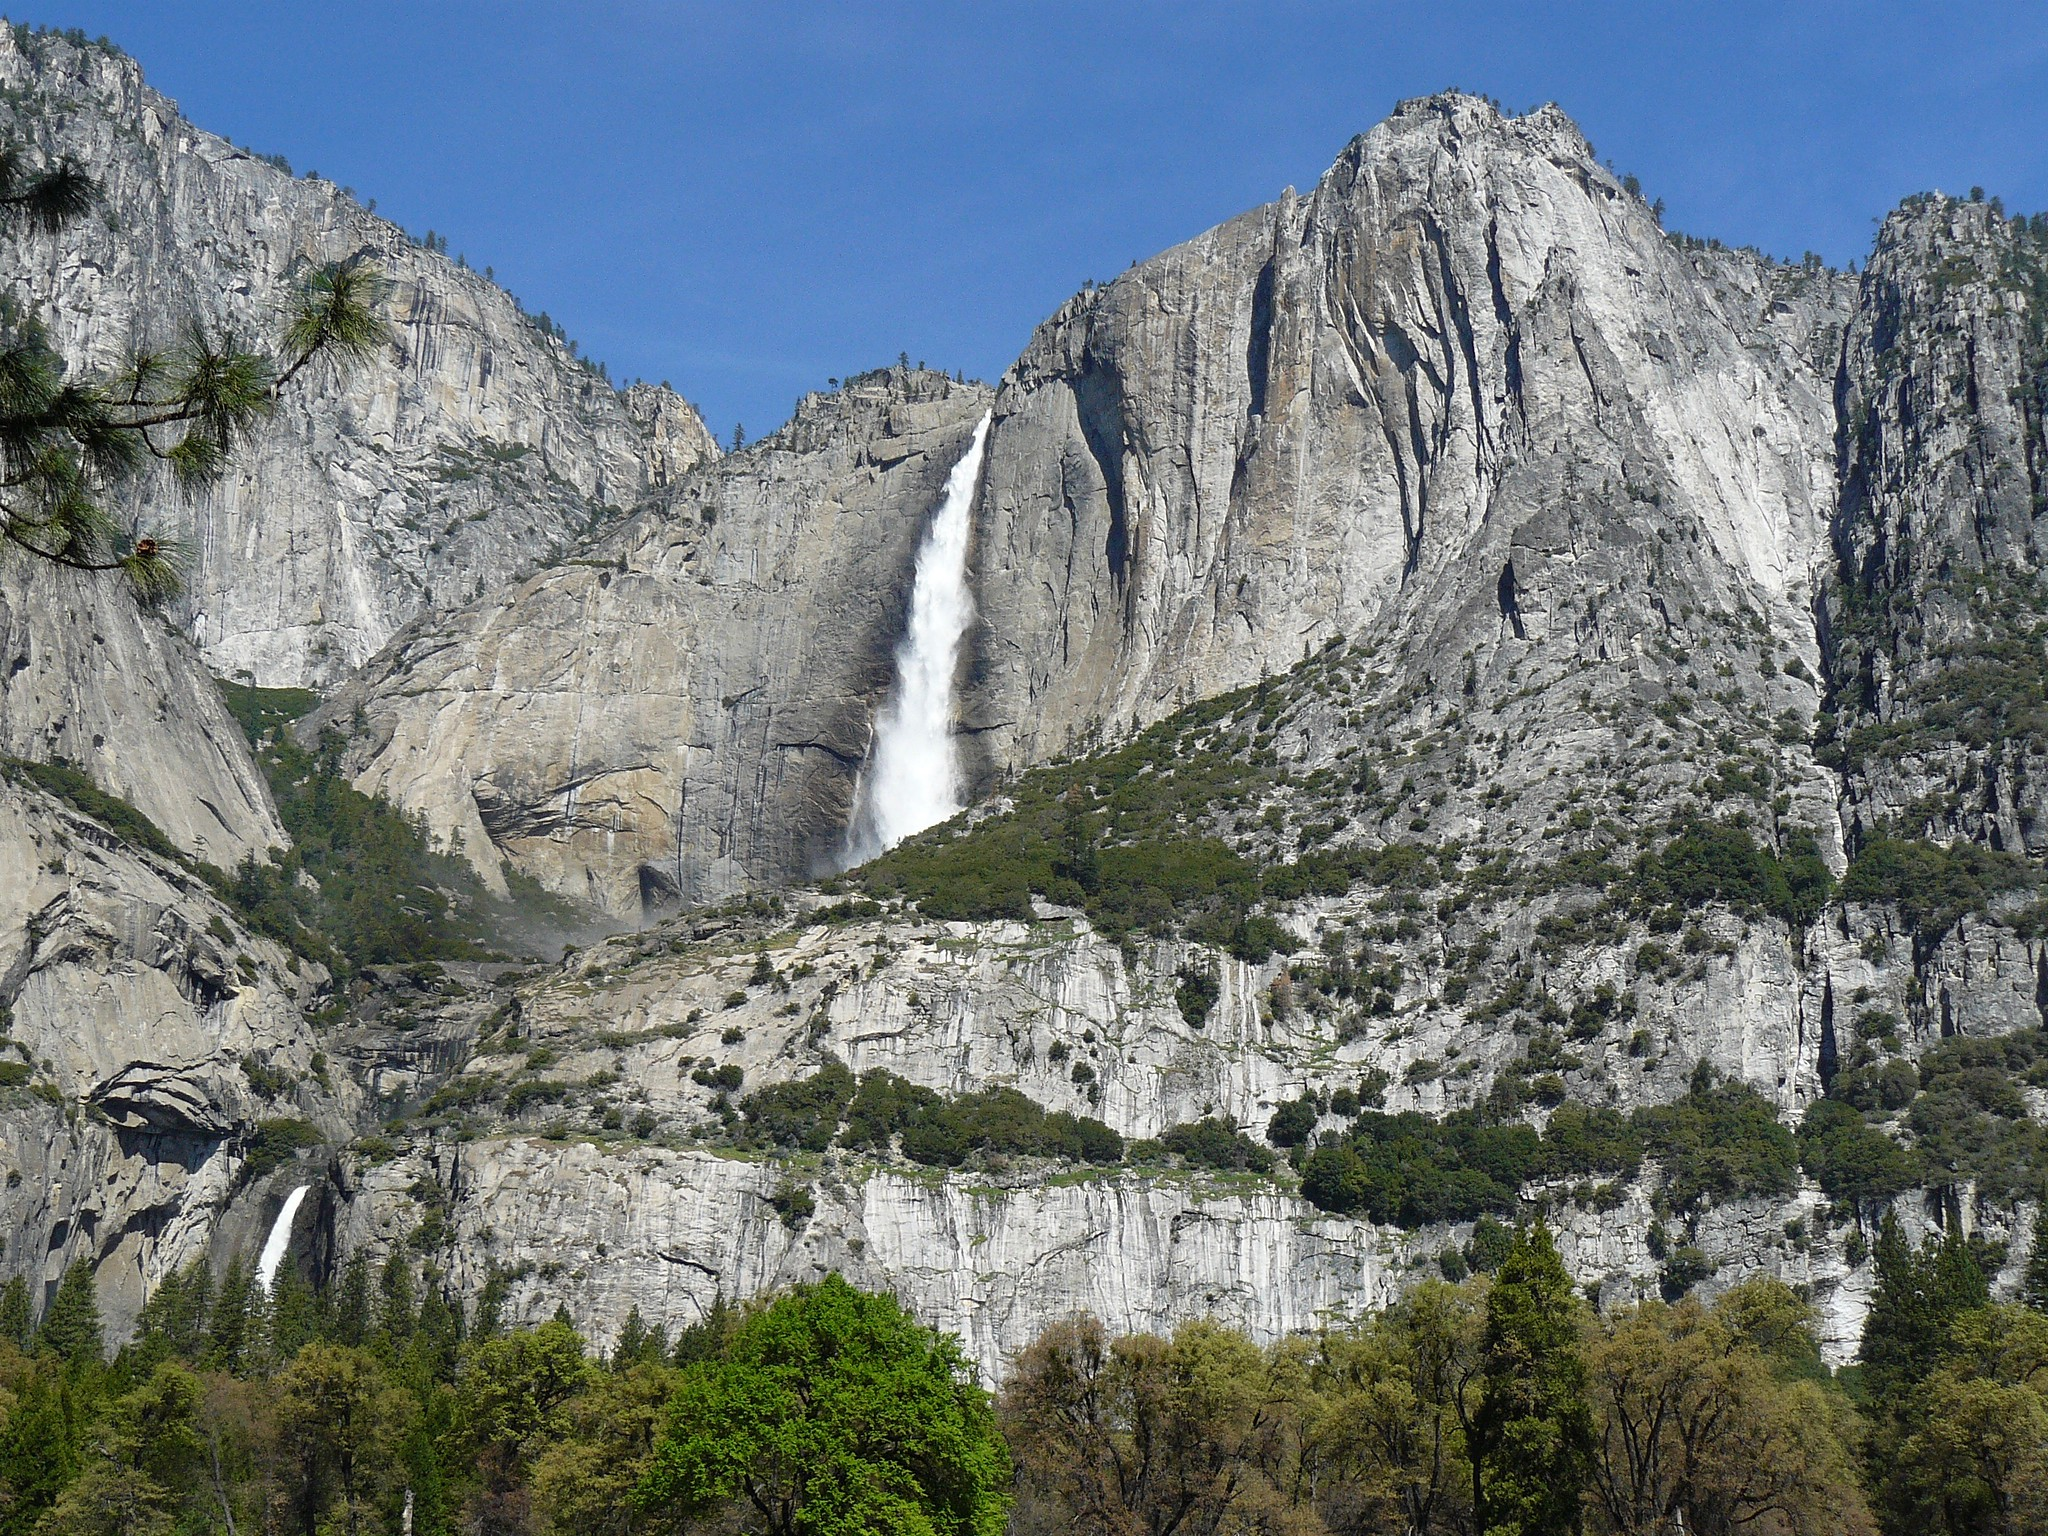 Magnetic Attraction of California-Yosemite National Park: A UNESCO World Heritage Site